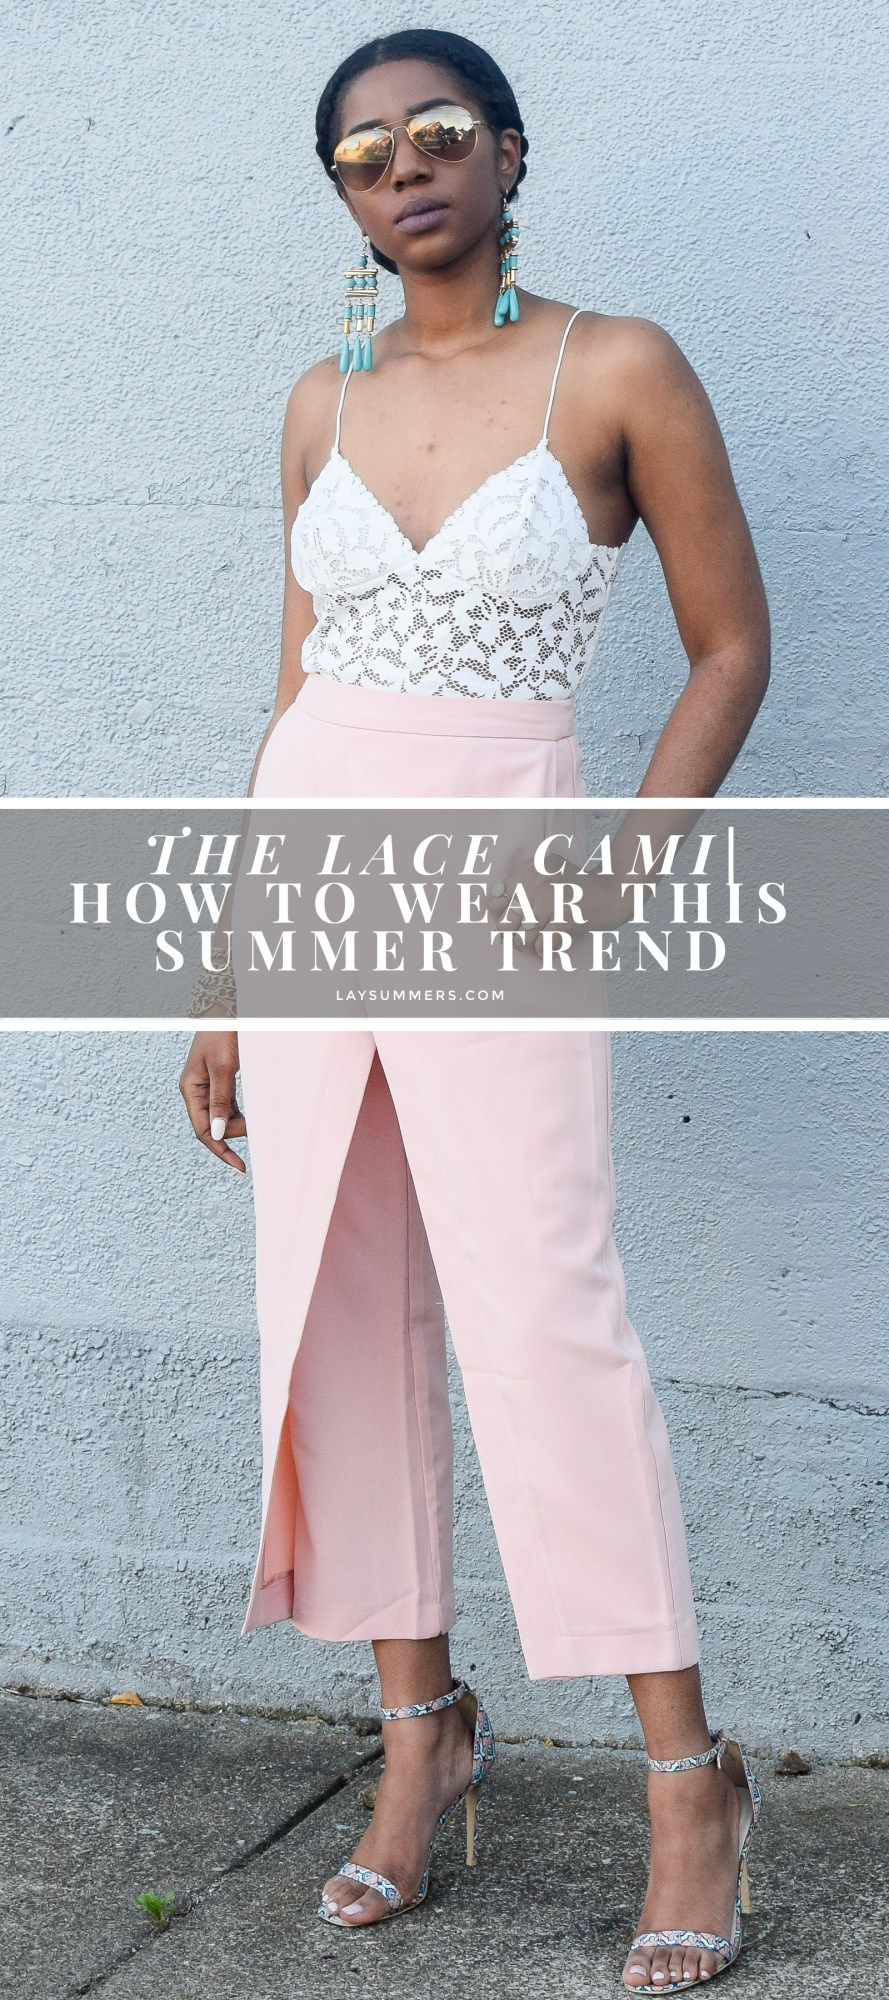 lace cami, summer trends 2017, summer outfits